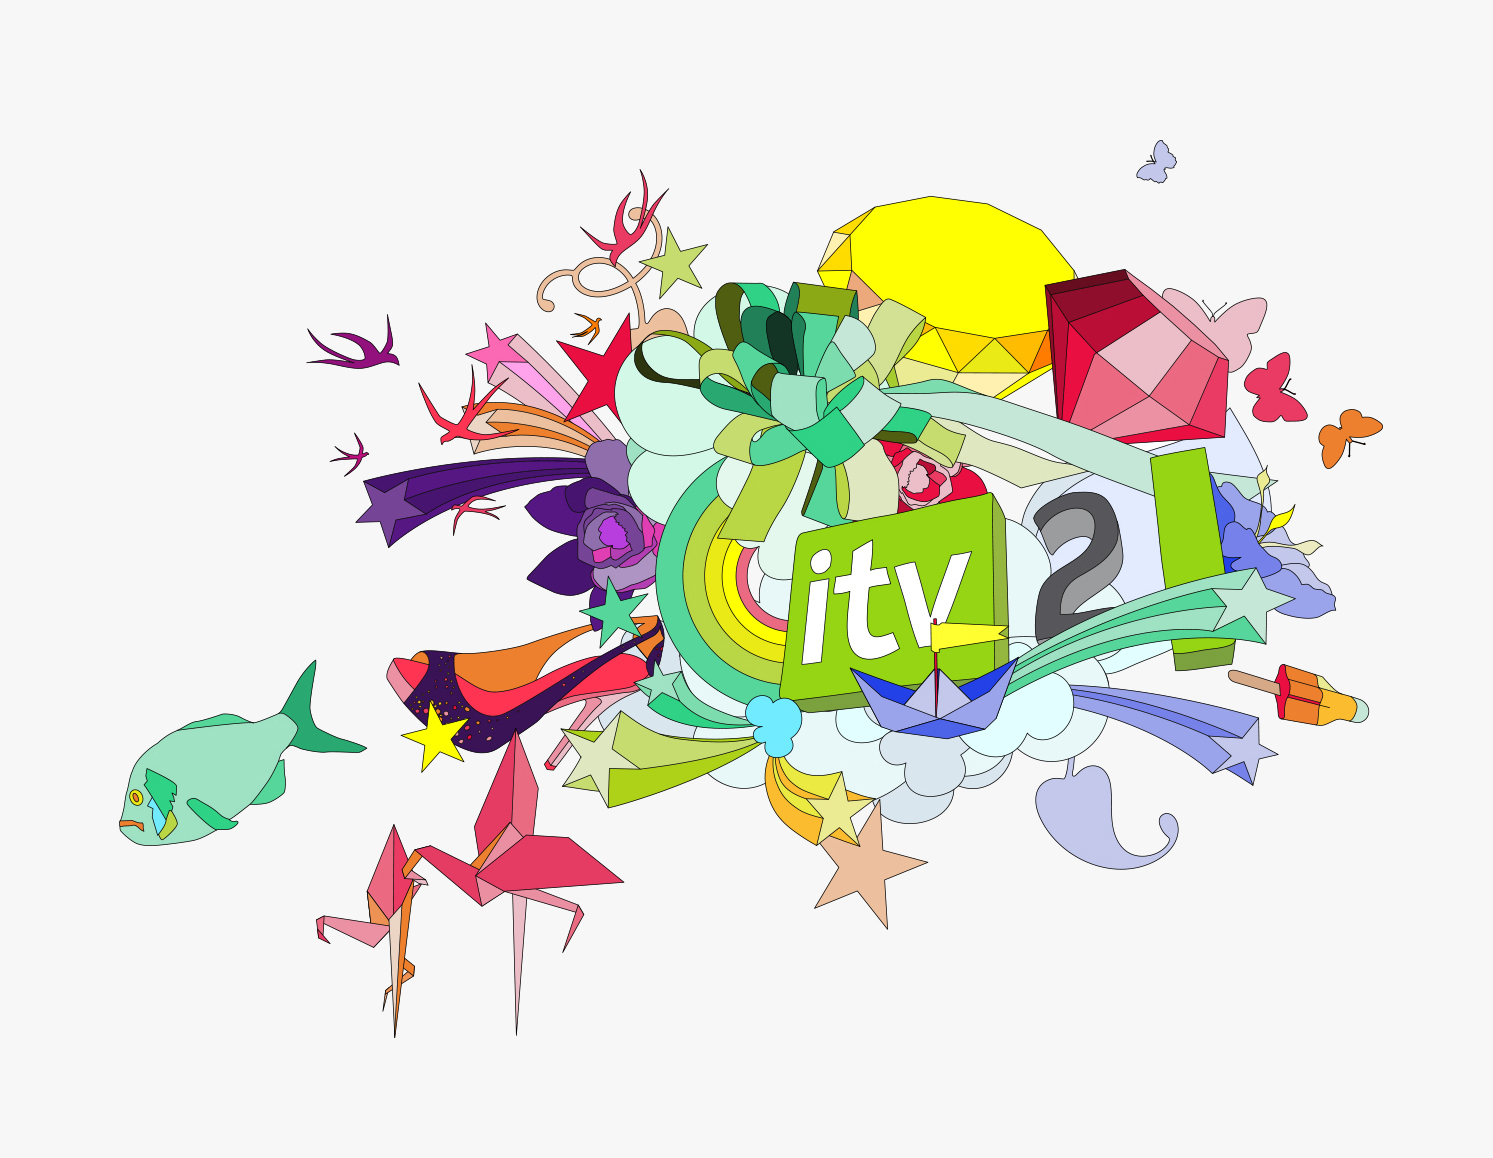 Vector illustration for ITV 2